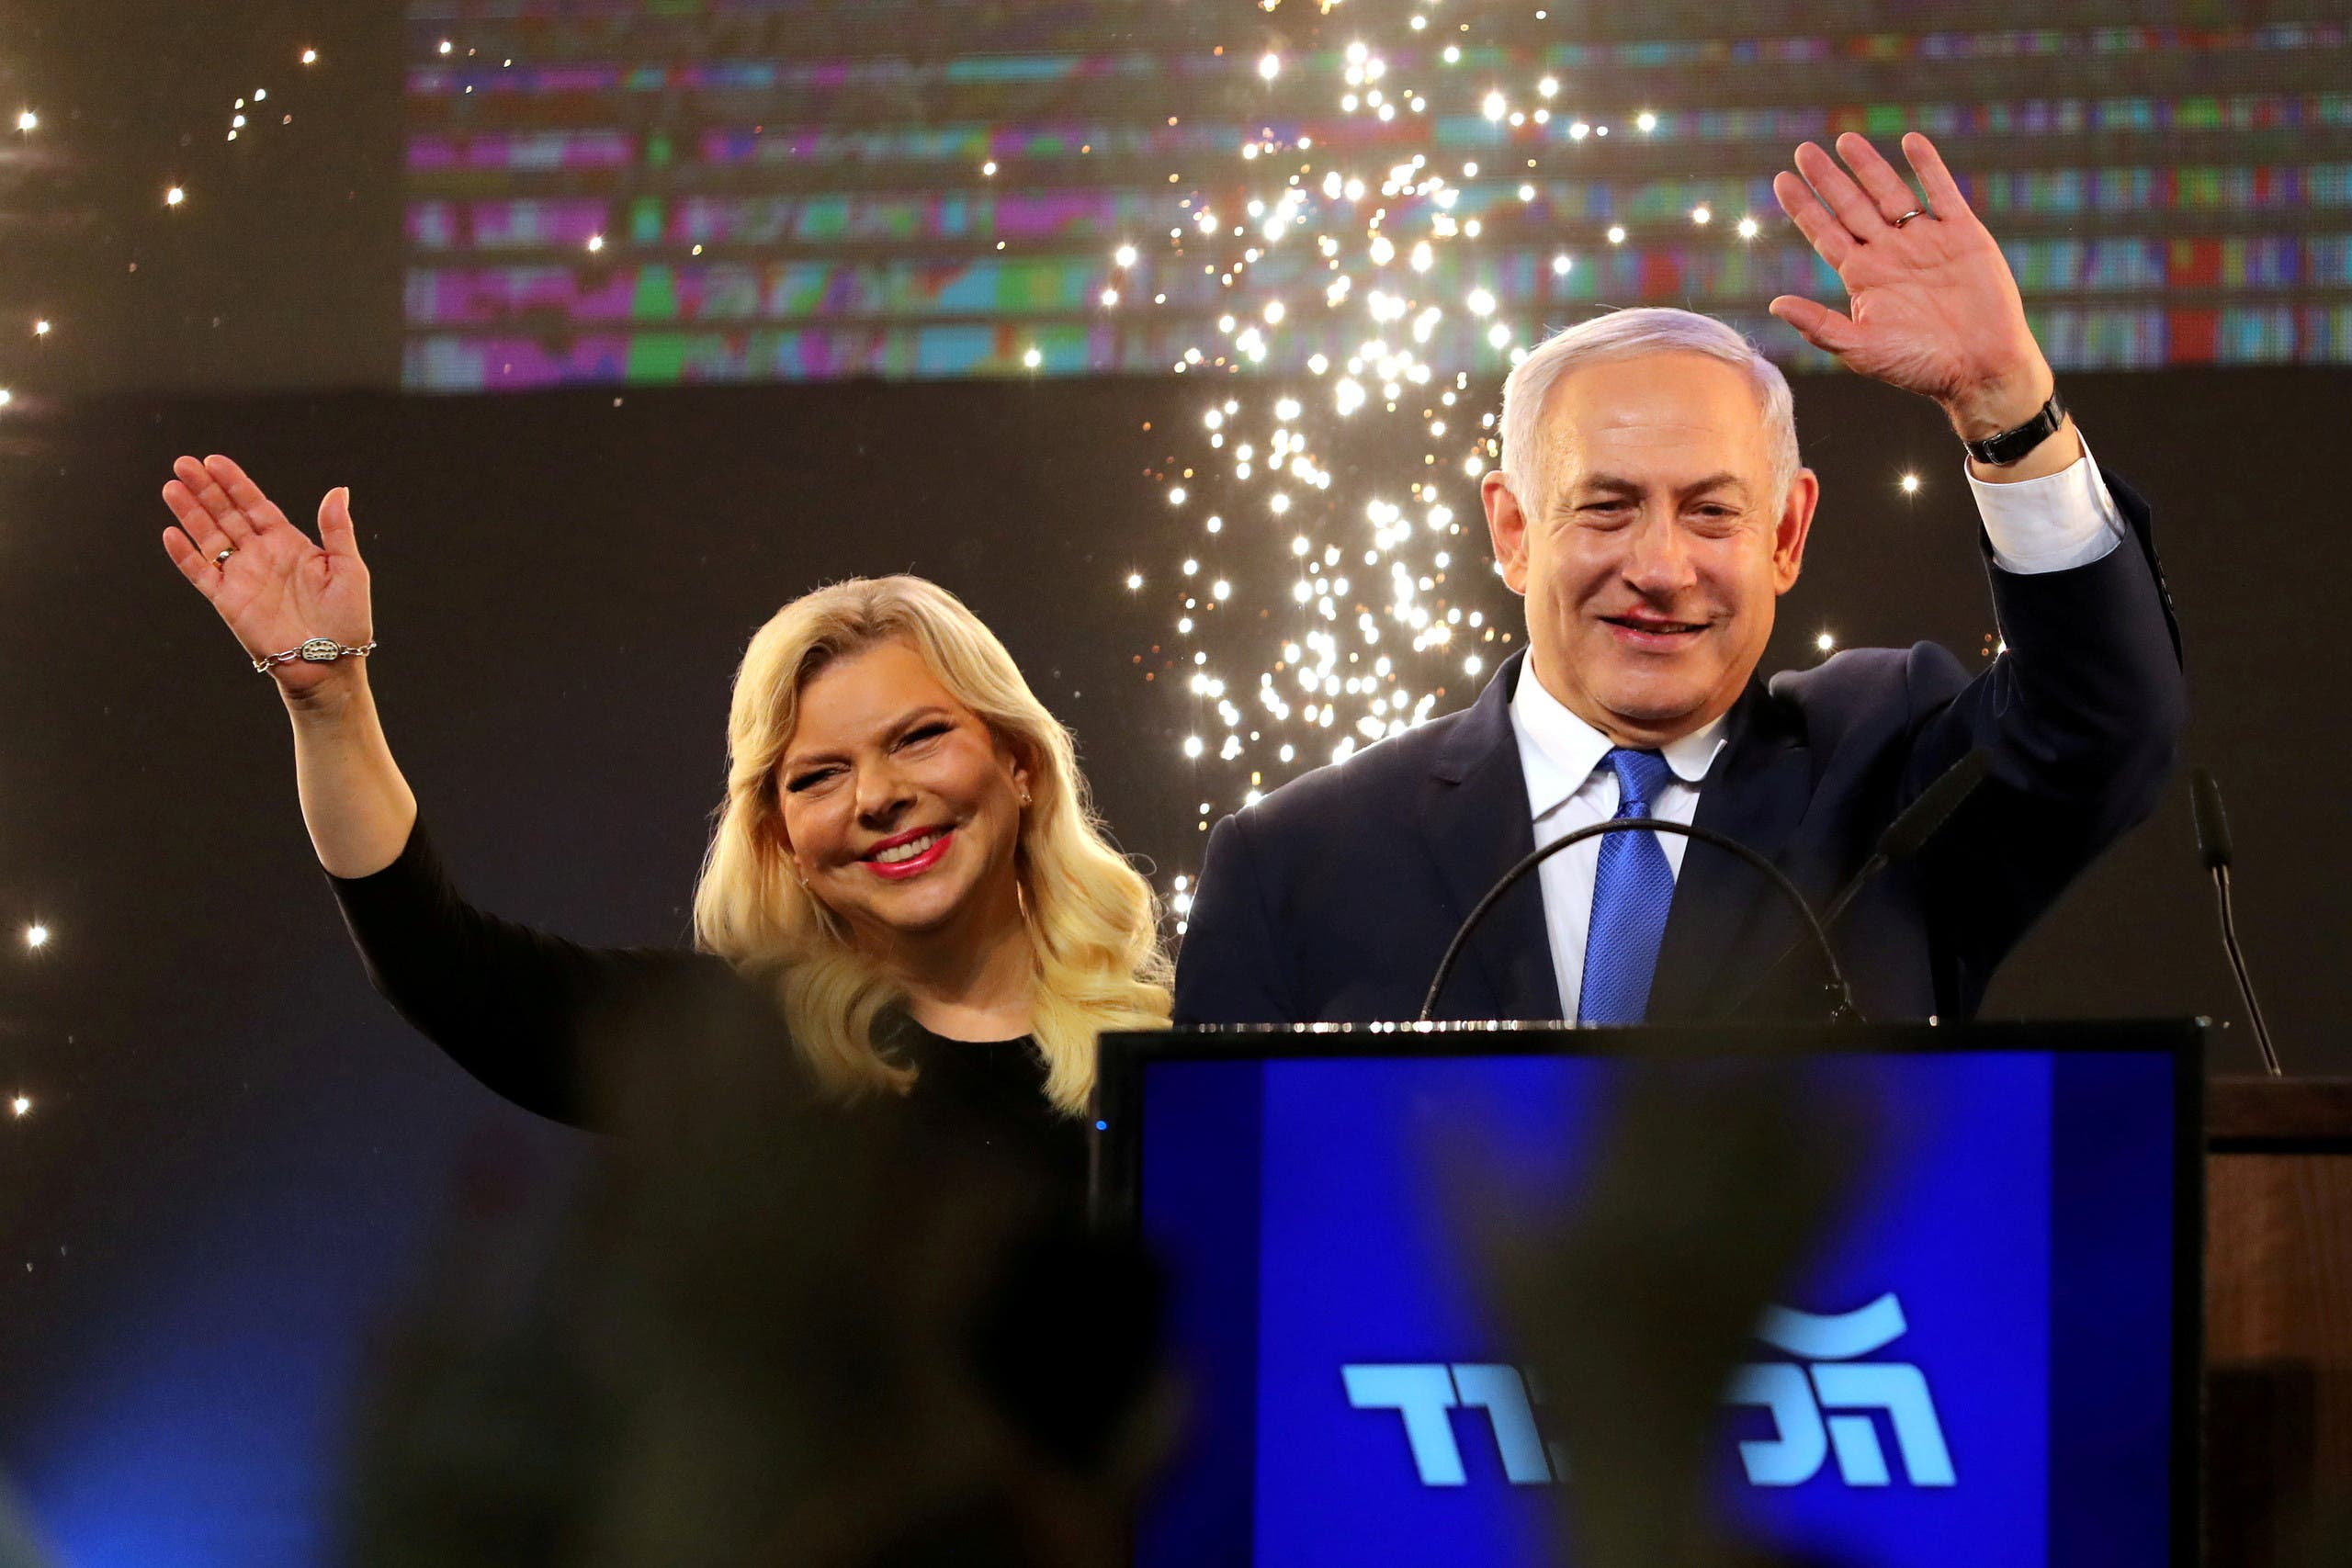 Benjamin Netanyahu and his wife Sarah after the Likud victory in the 2019 elections